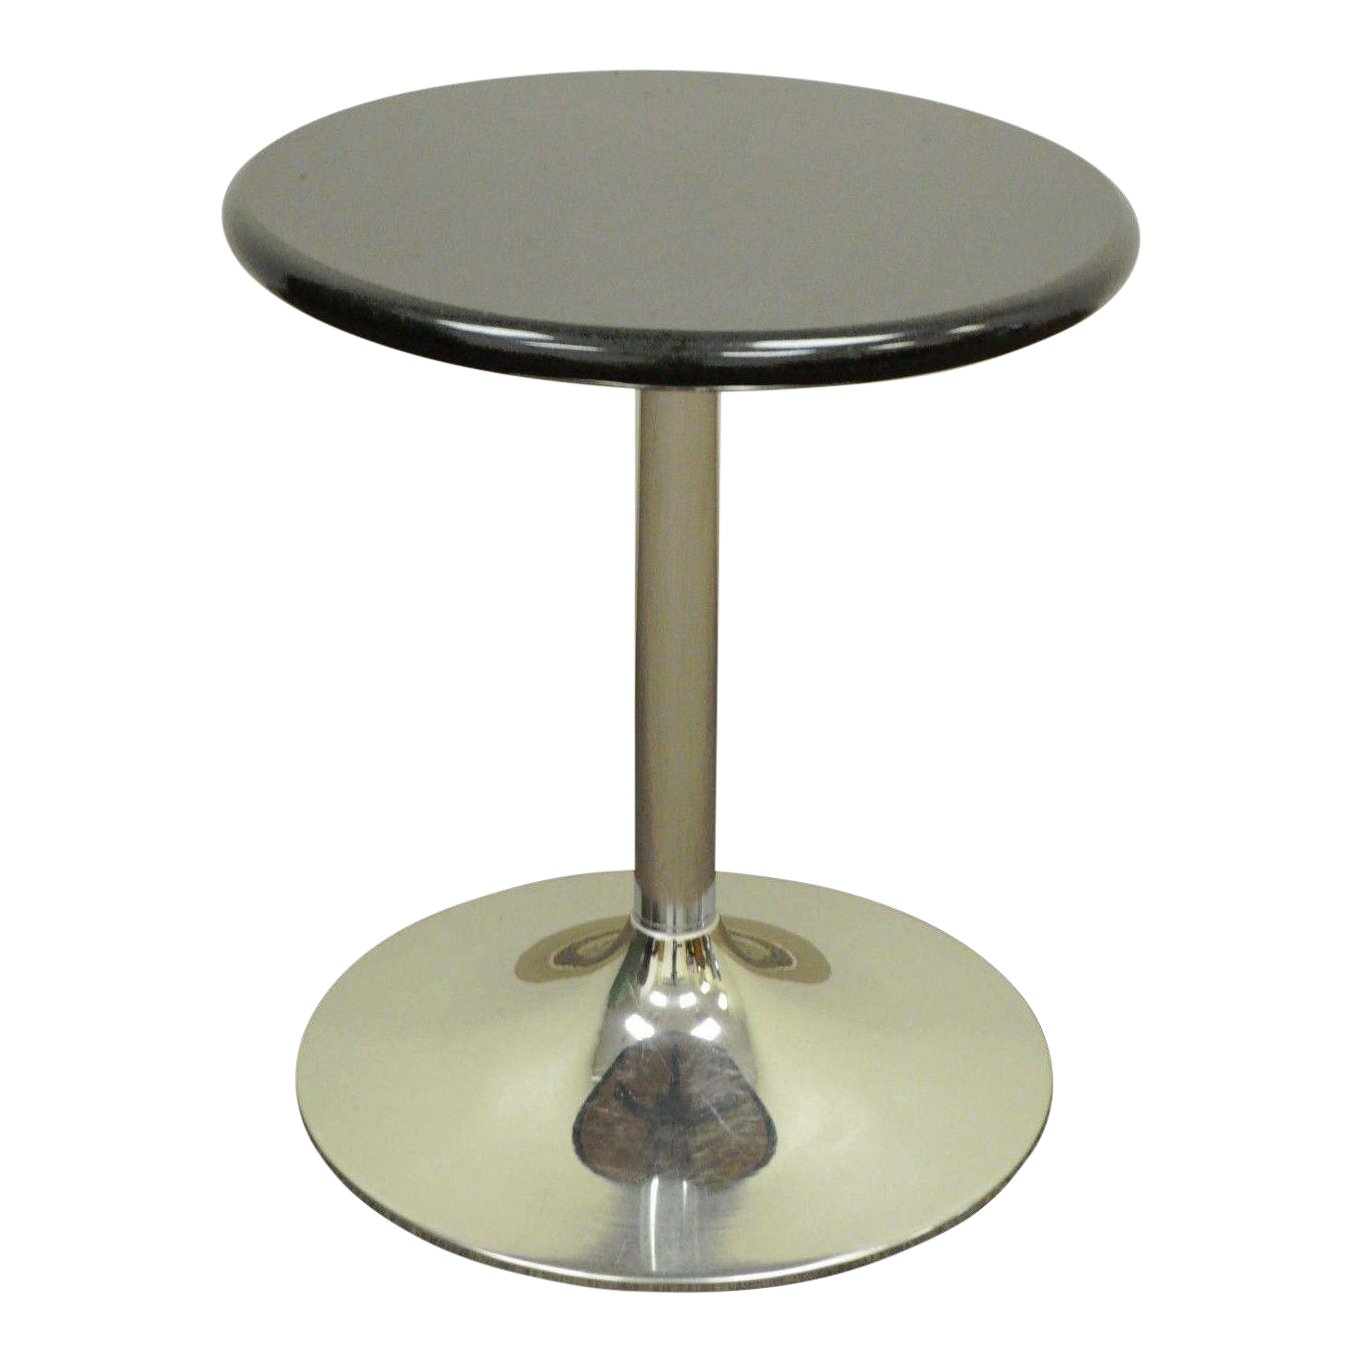 round contemporary modern black granite chrome tulip base accent side table chairish outside bar furniture gray venetian bedside tables oak coffee and end small ideas dark wood